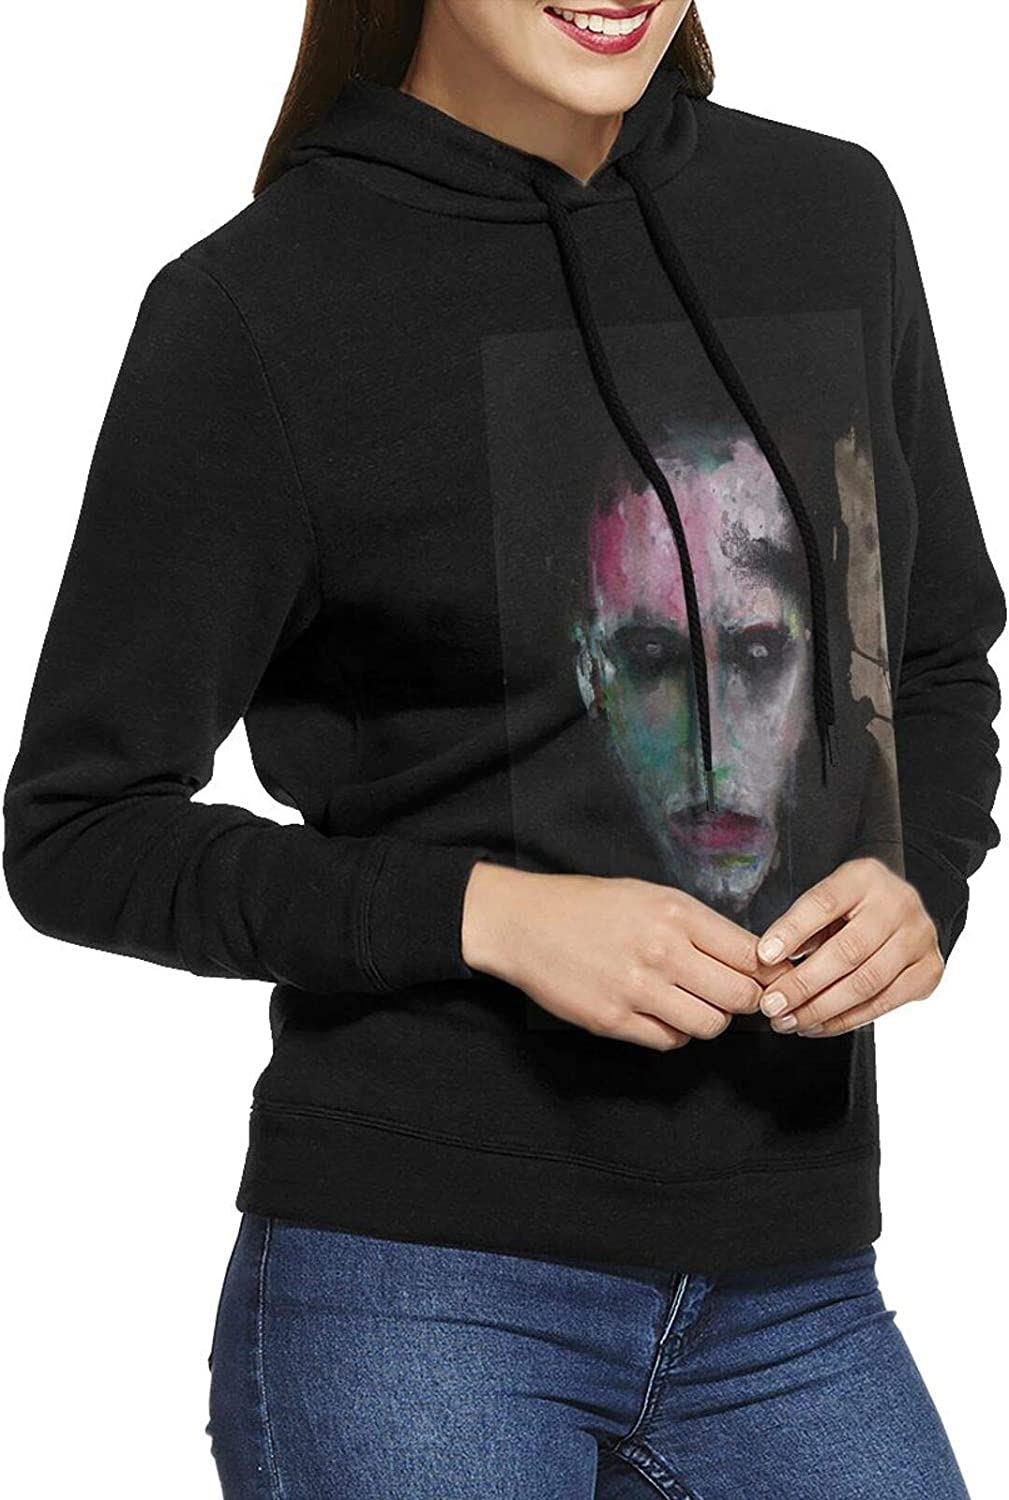 Marilyn Manson Hoodie Women'S Casual Sweatshirts Sle Cotton Gifts Excellence Long